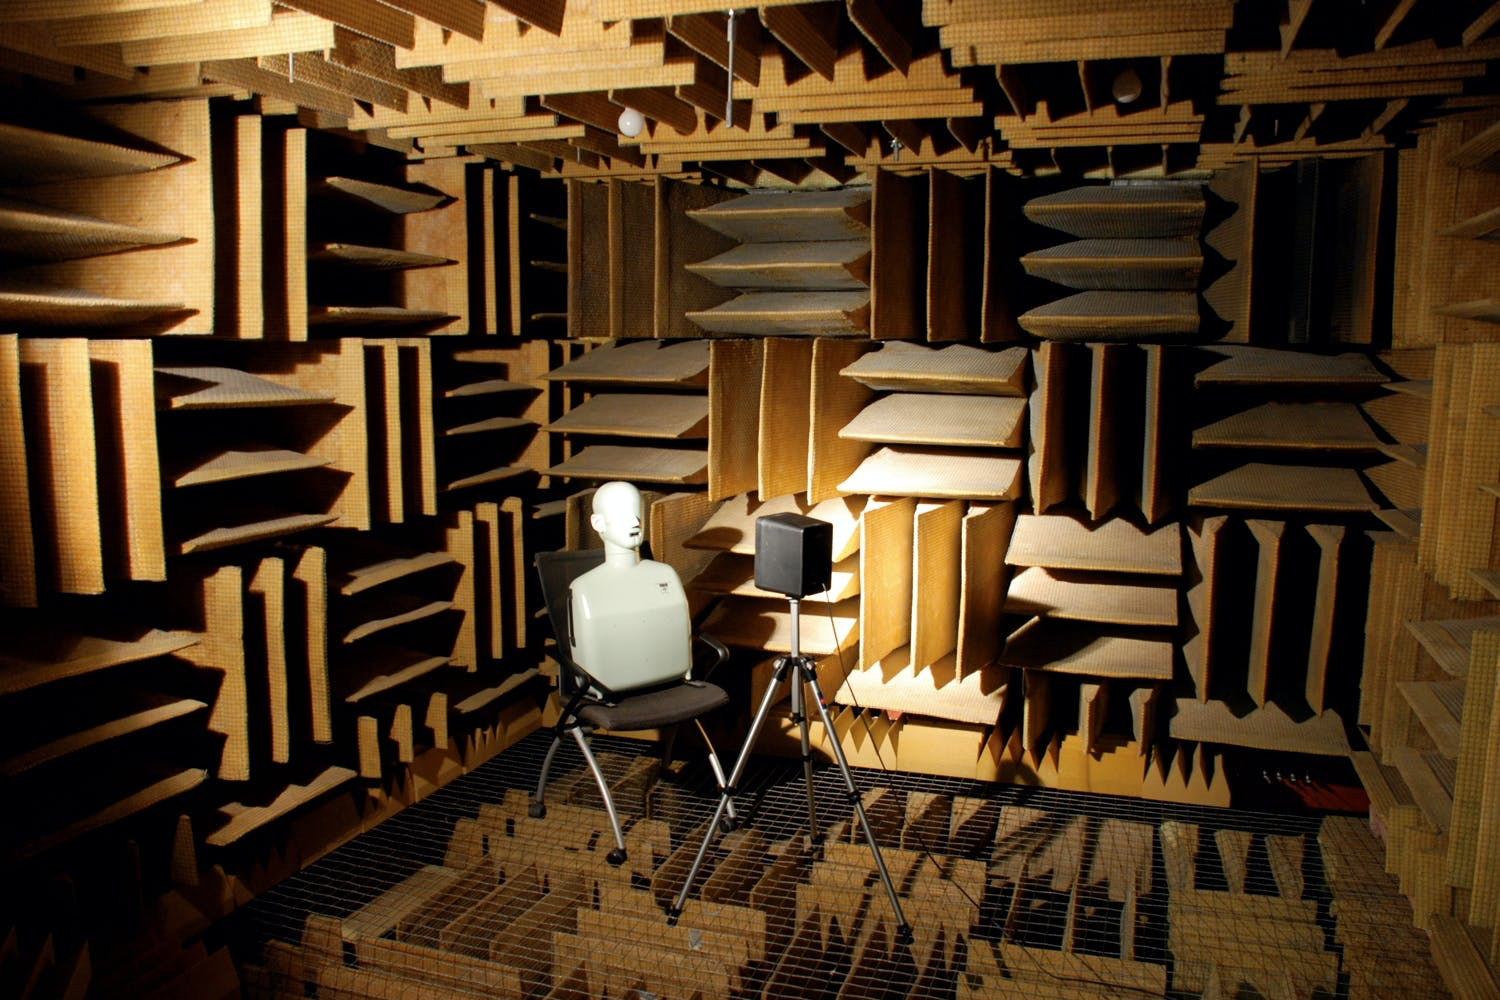 Soundproofed room, Orfield